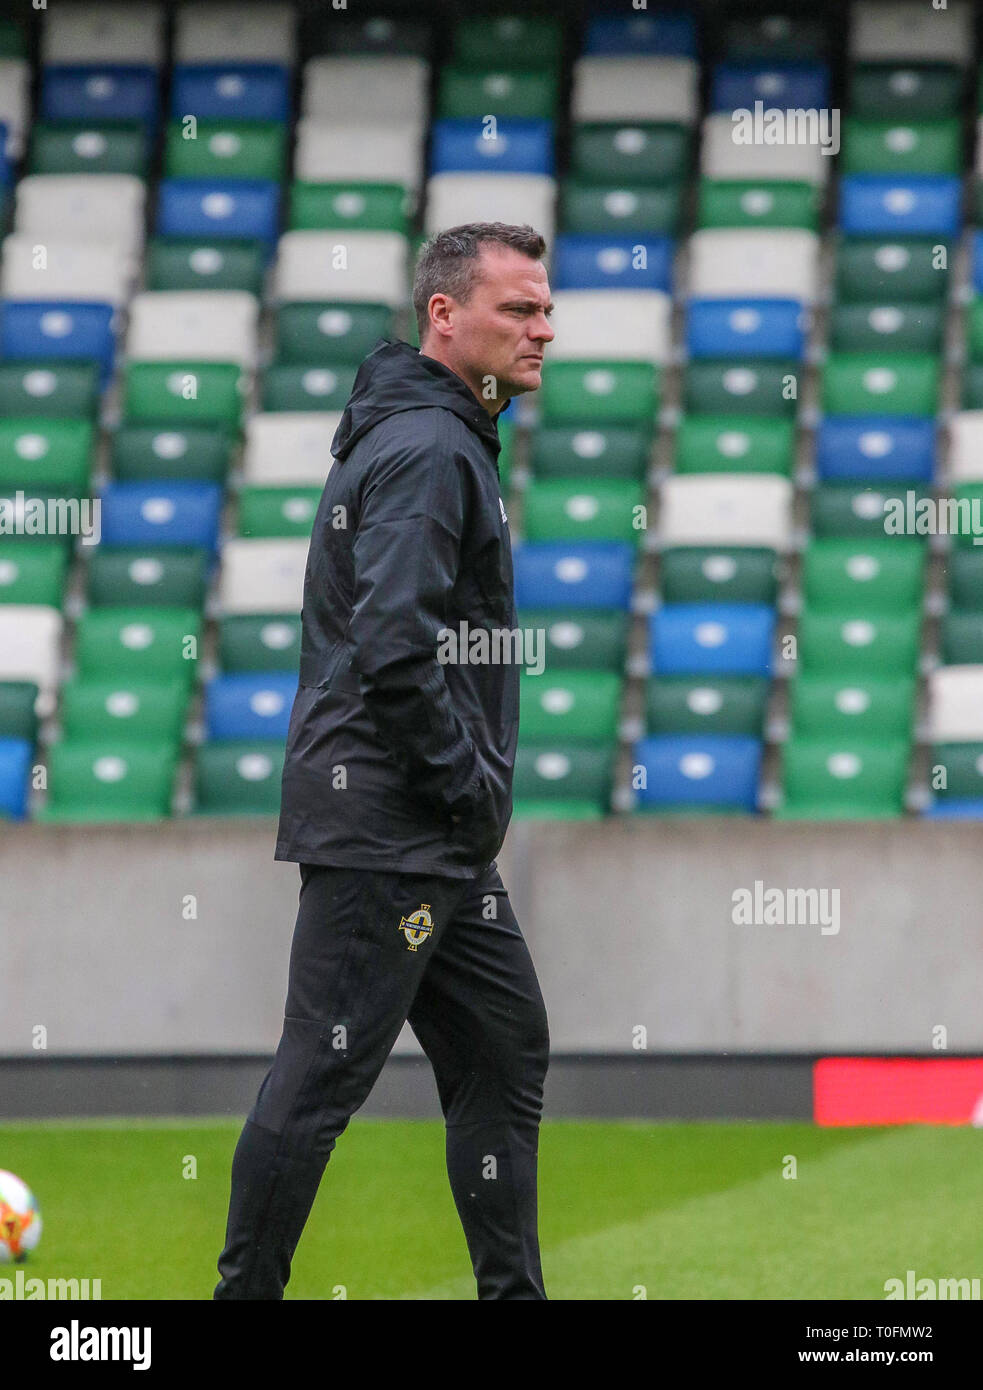 406b6ff43e1 Windsor Park, Belfast, Northern Ireland.20 March 2019.Northern Ireland  training in